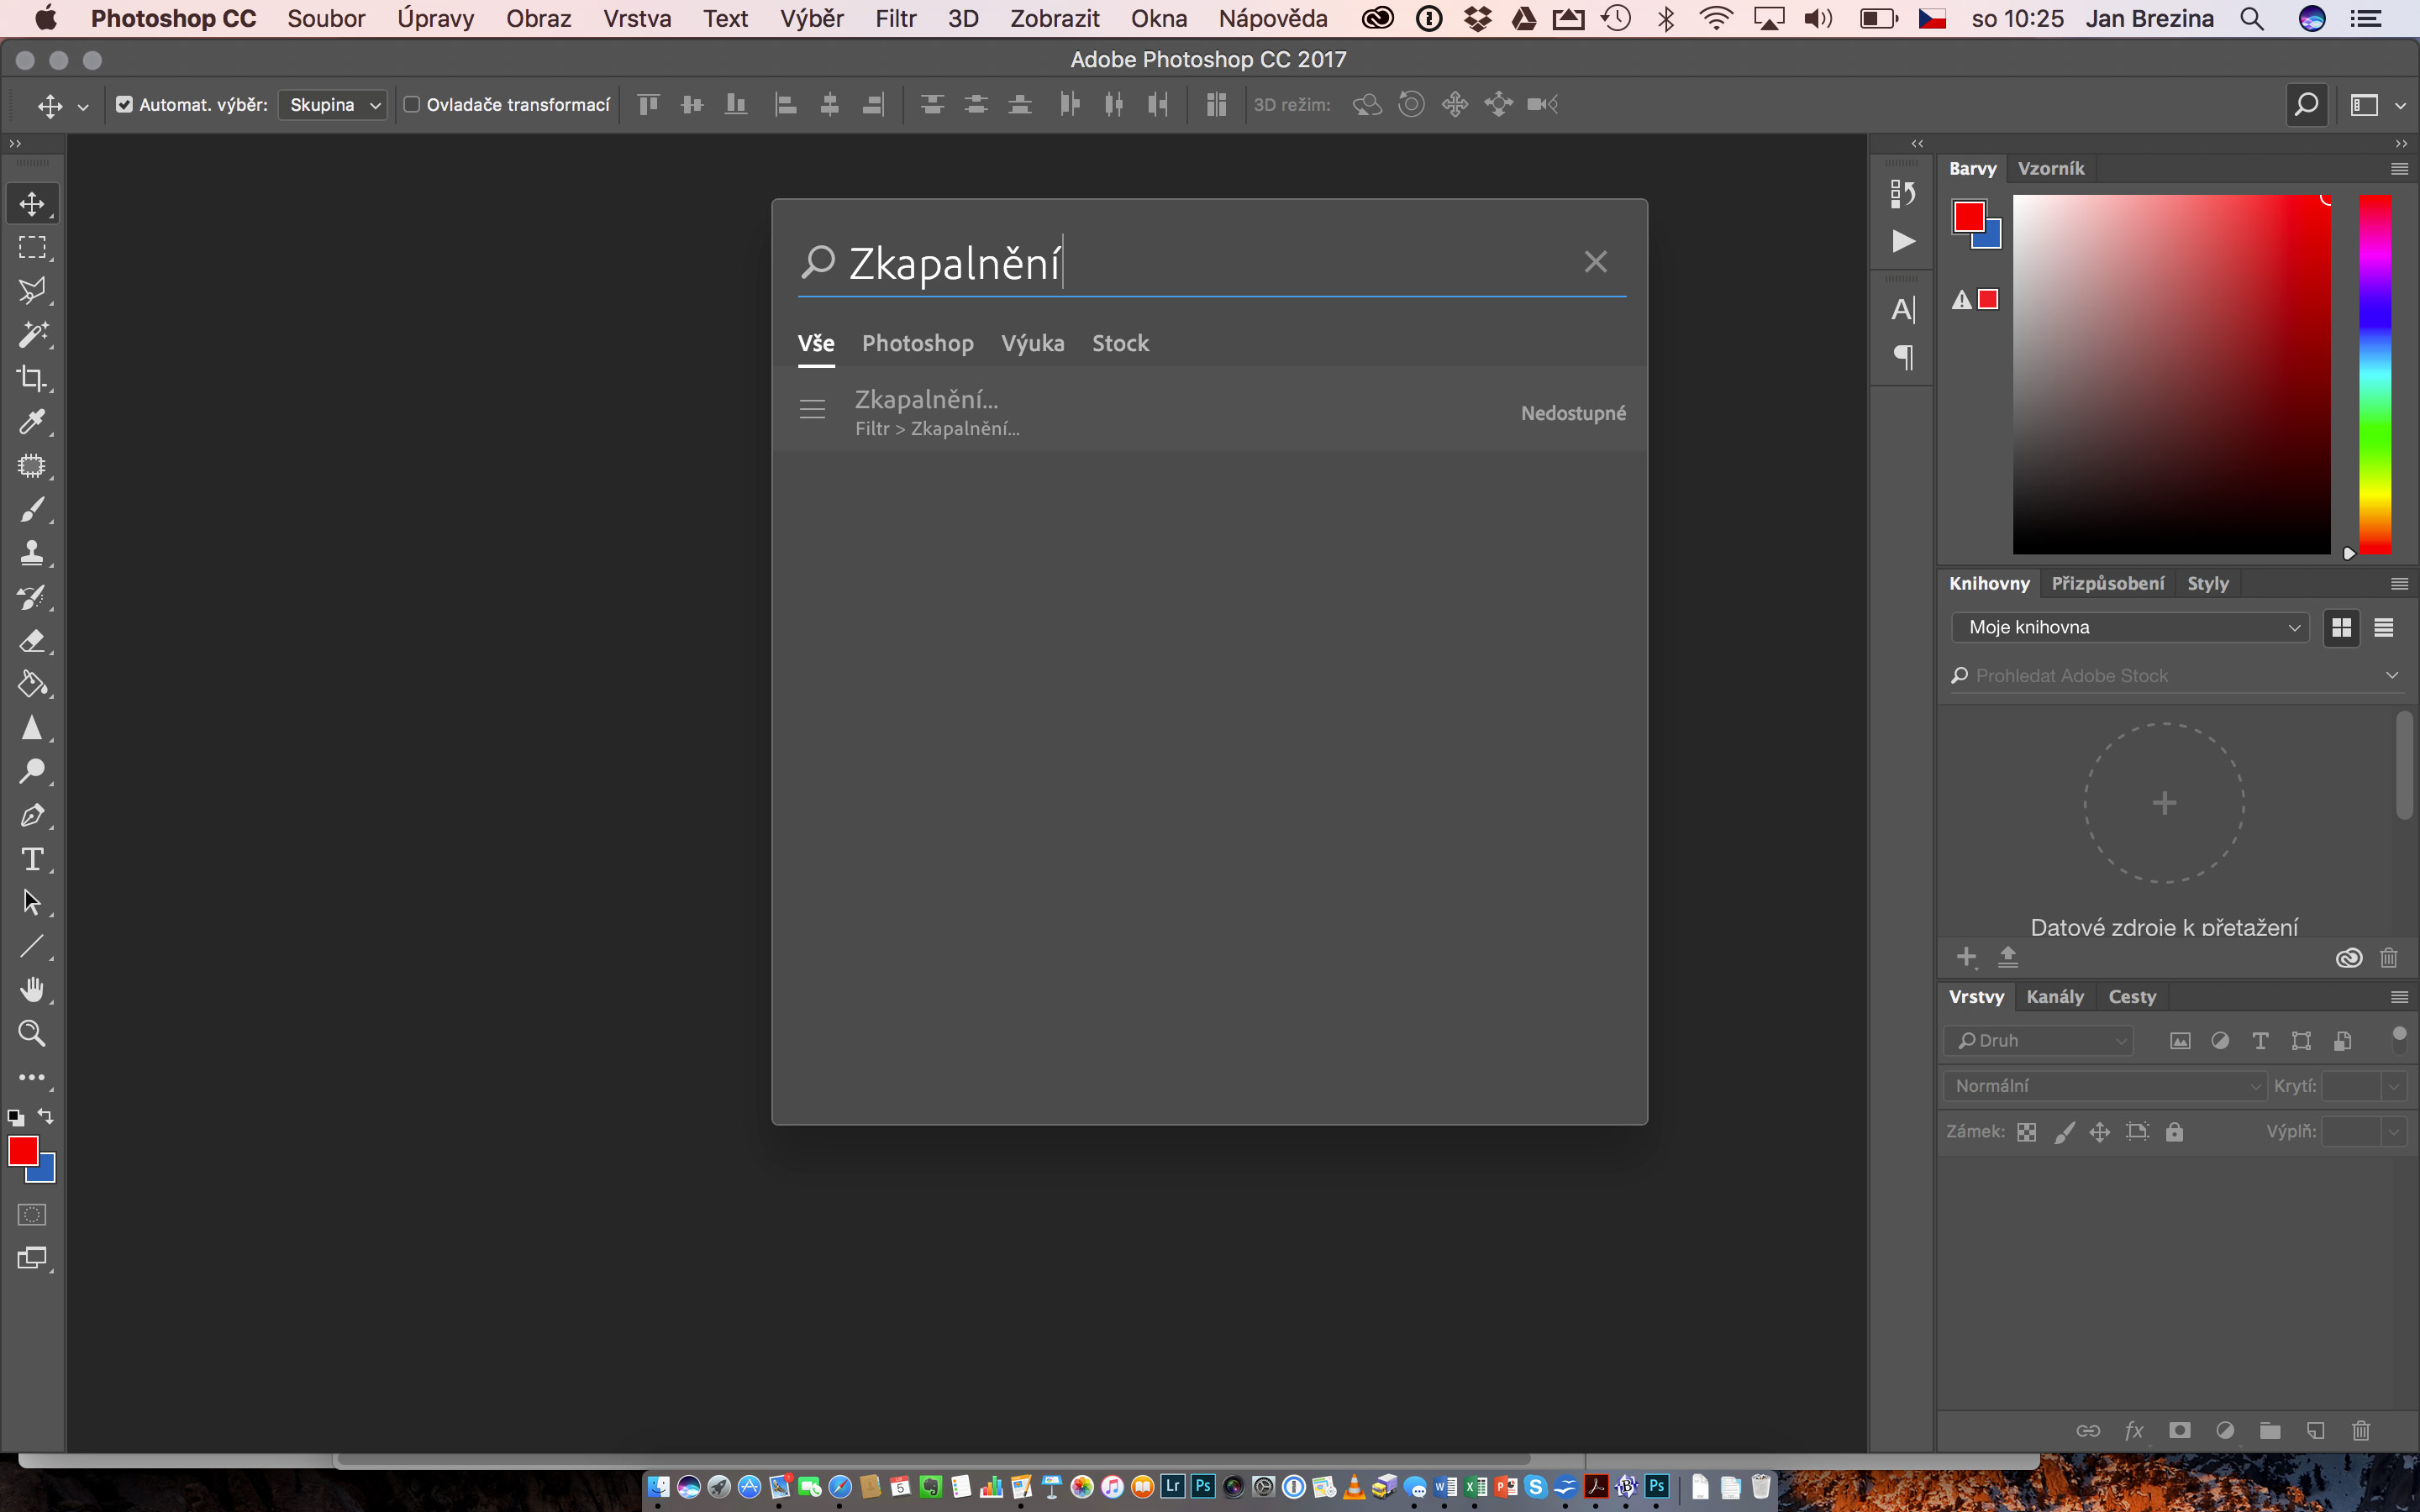 new in photoshop cc 2017